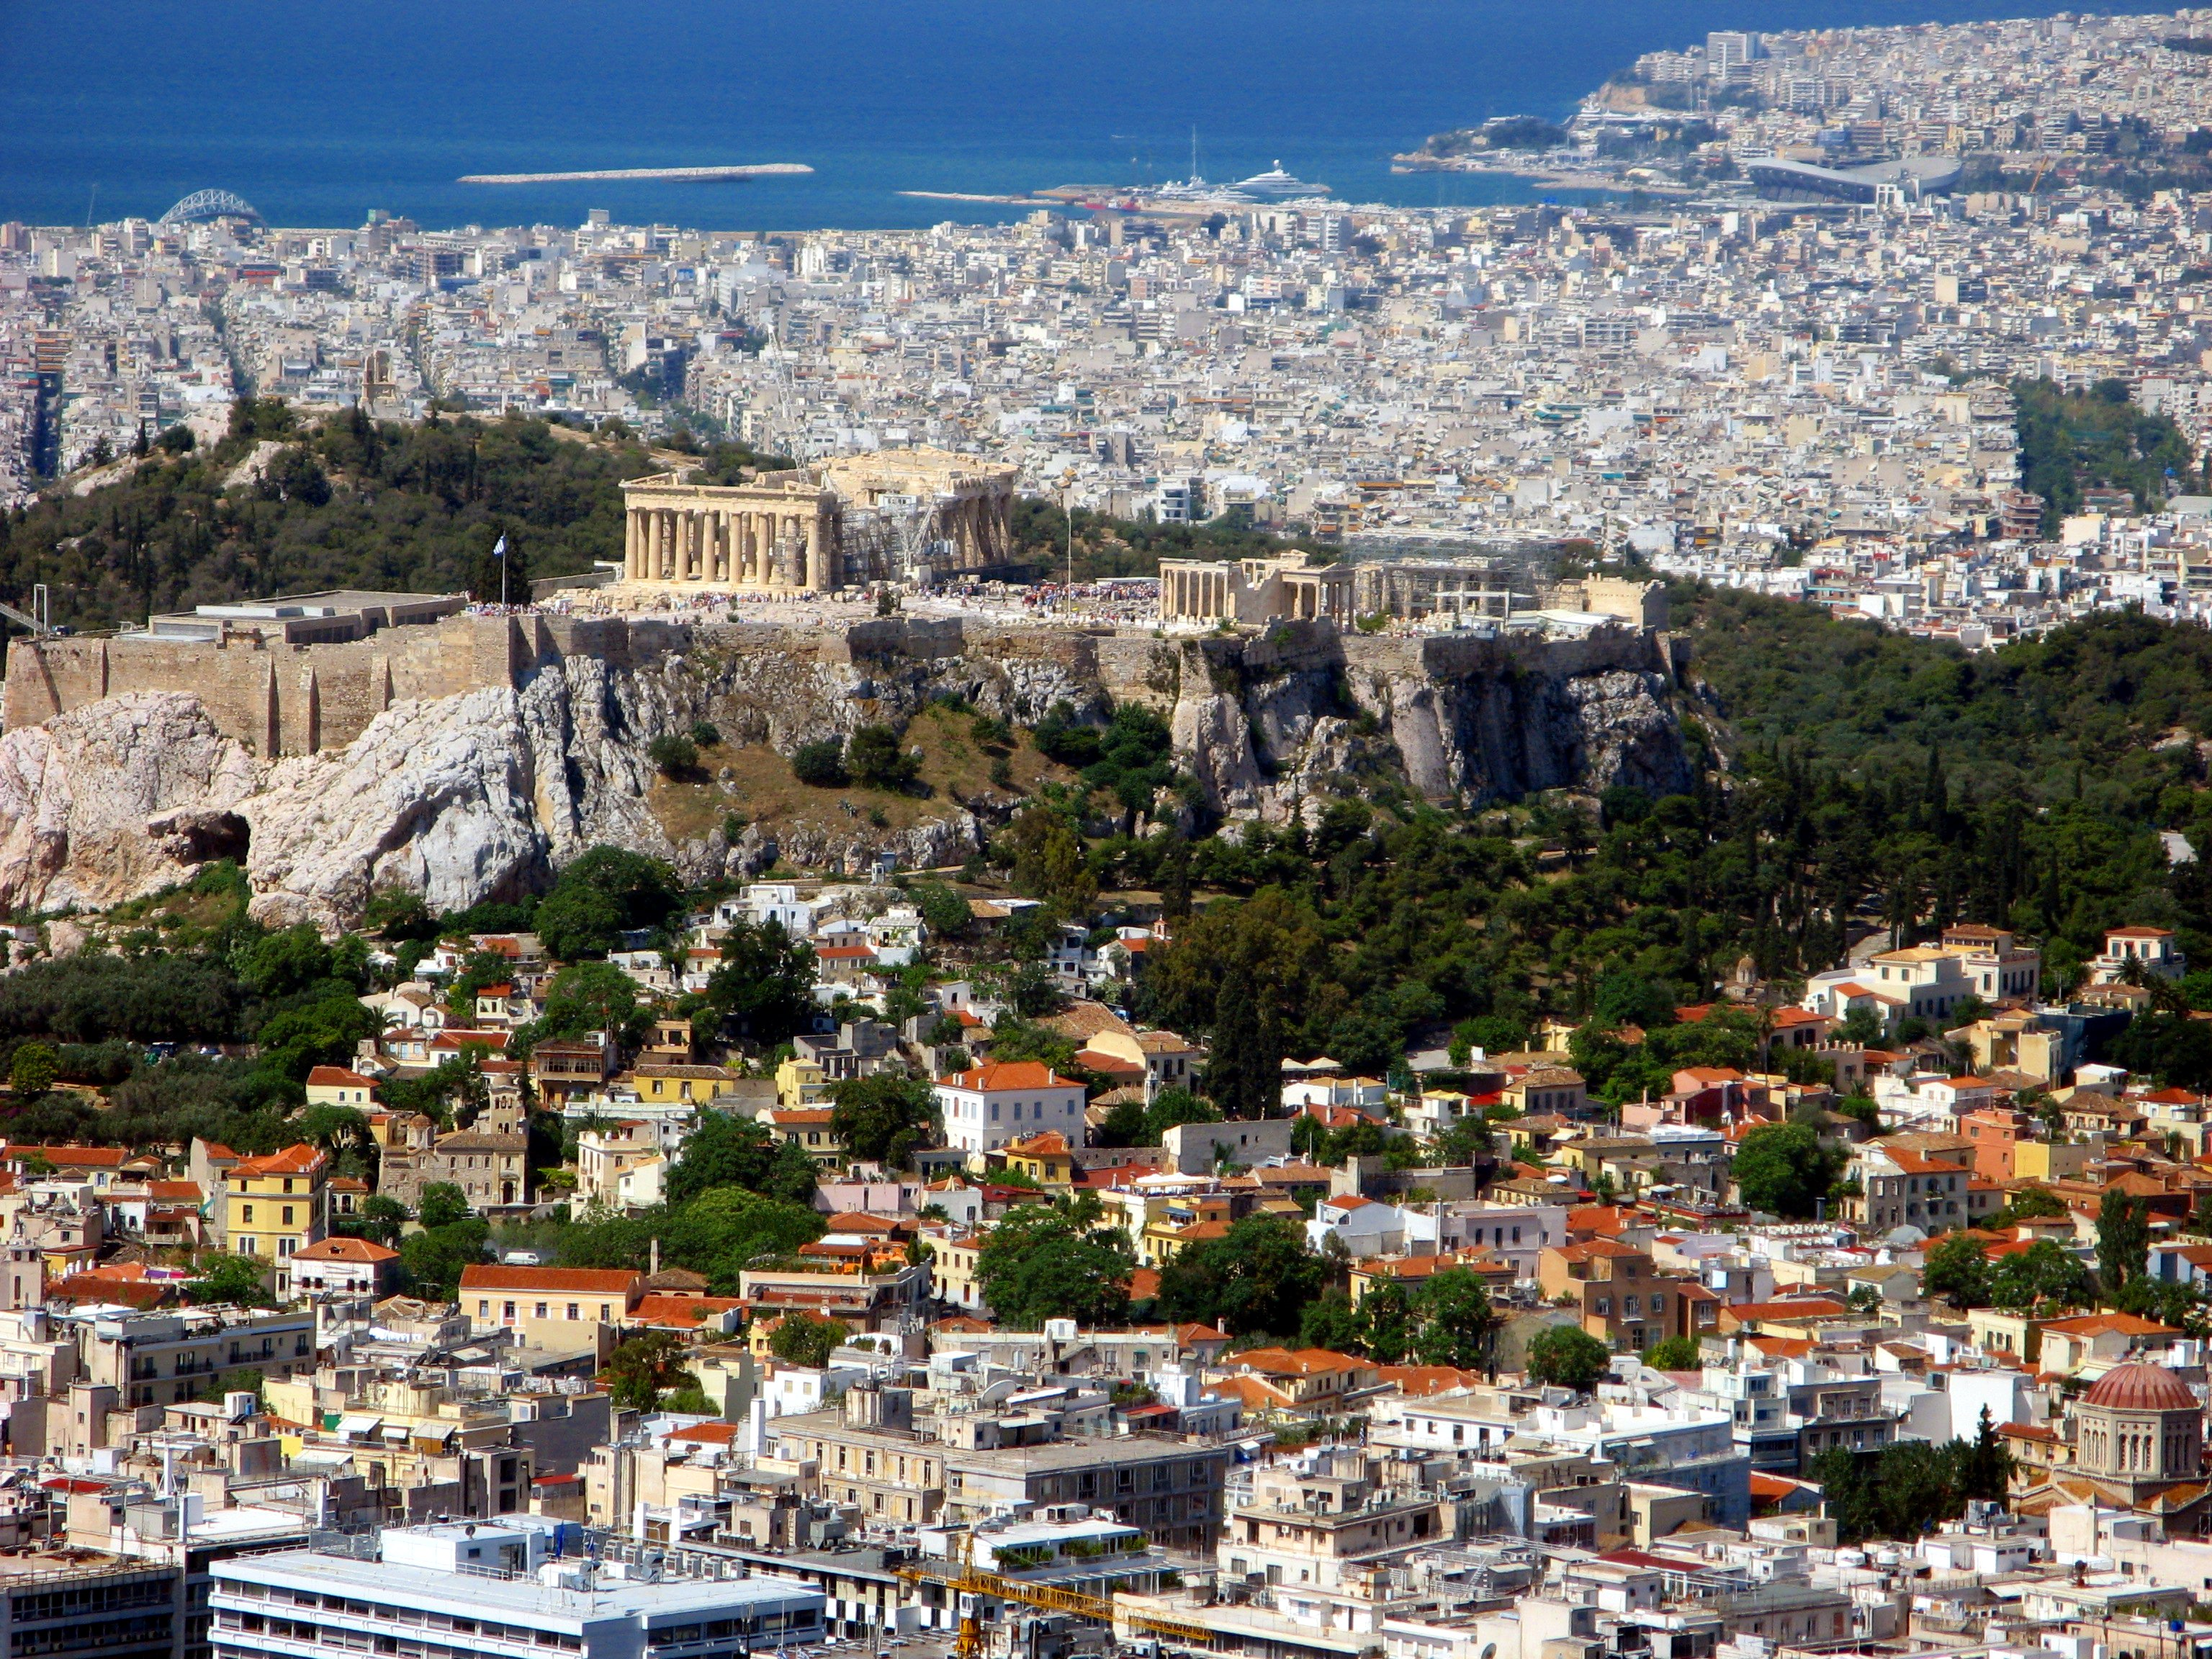 http://nomis80.org/greece/acropolis.jpg